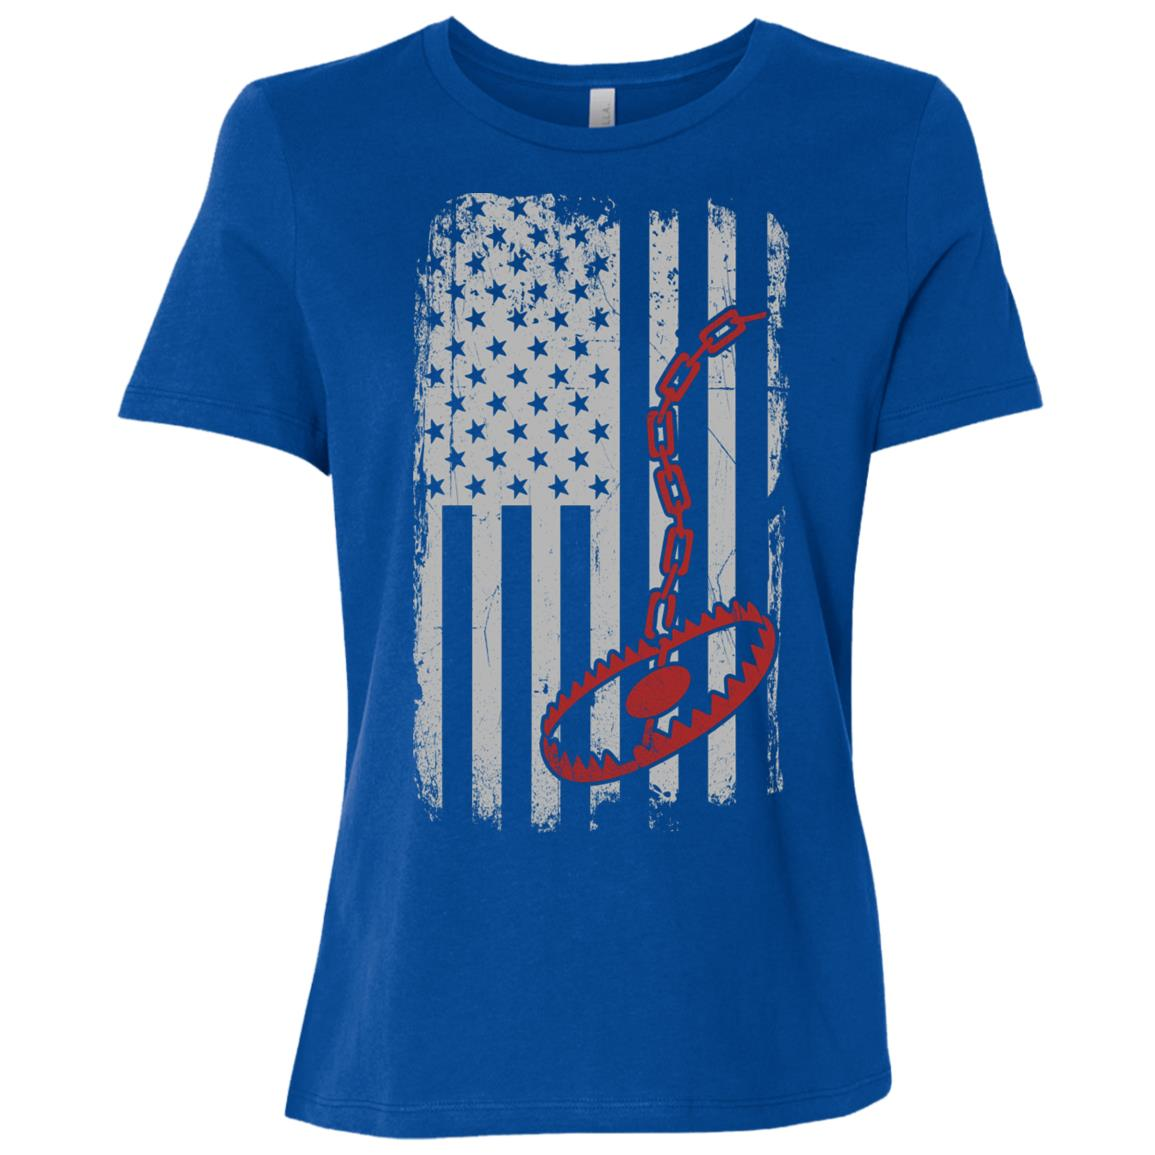 Trapper – Trapping Us American Flag GIft Women Short Sleeve T-Shirt